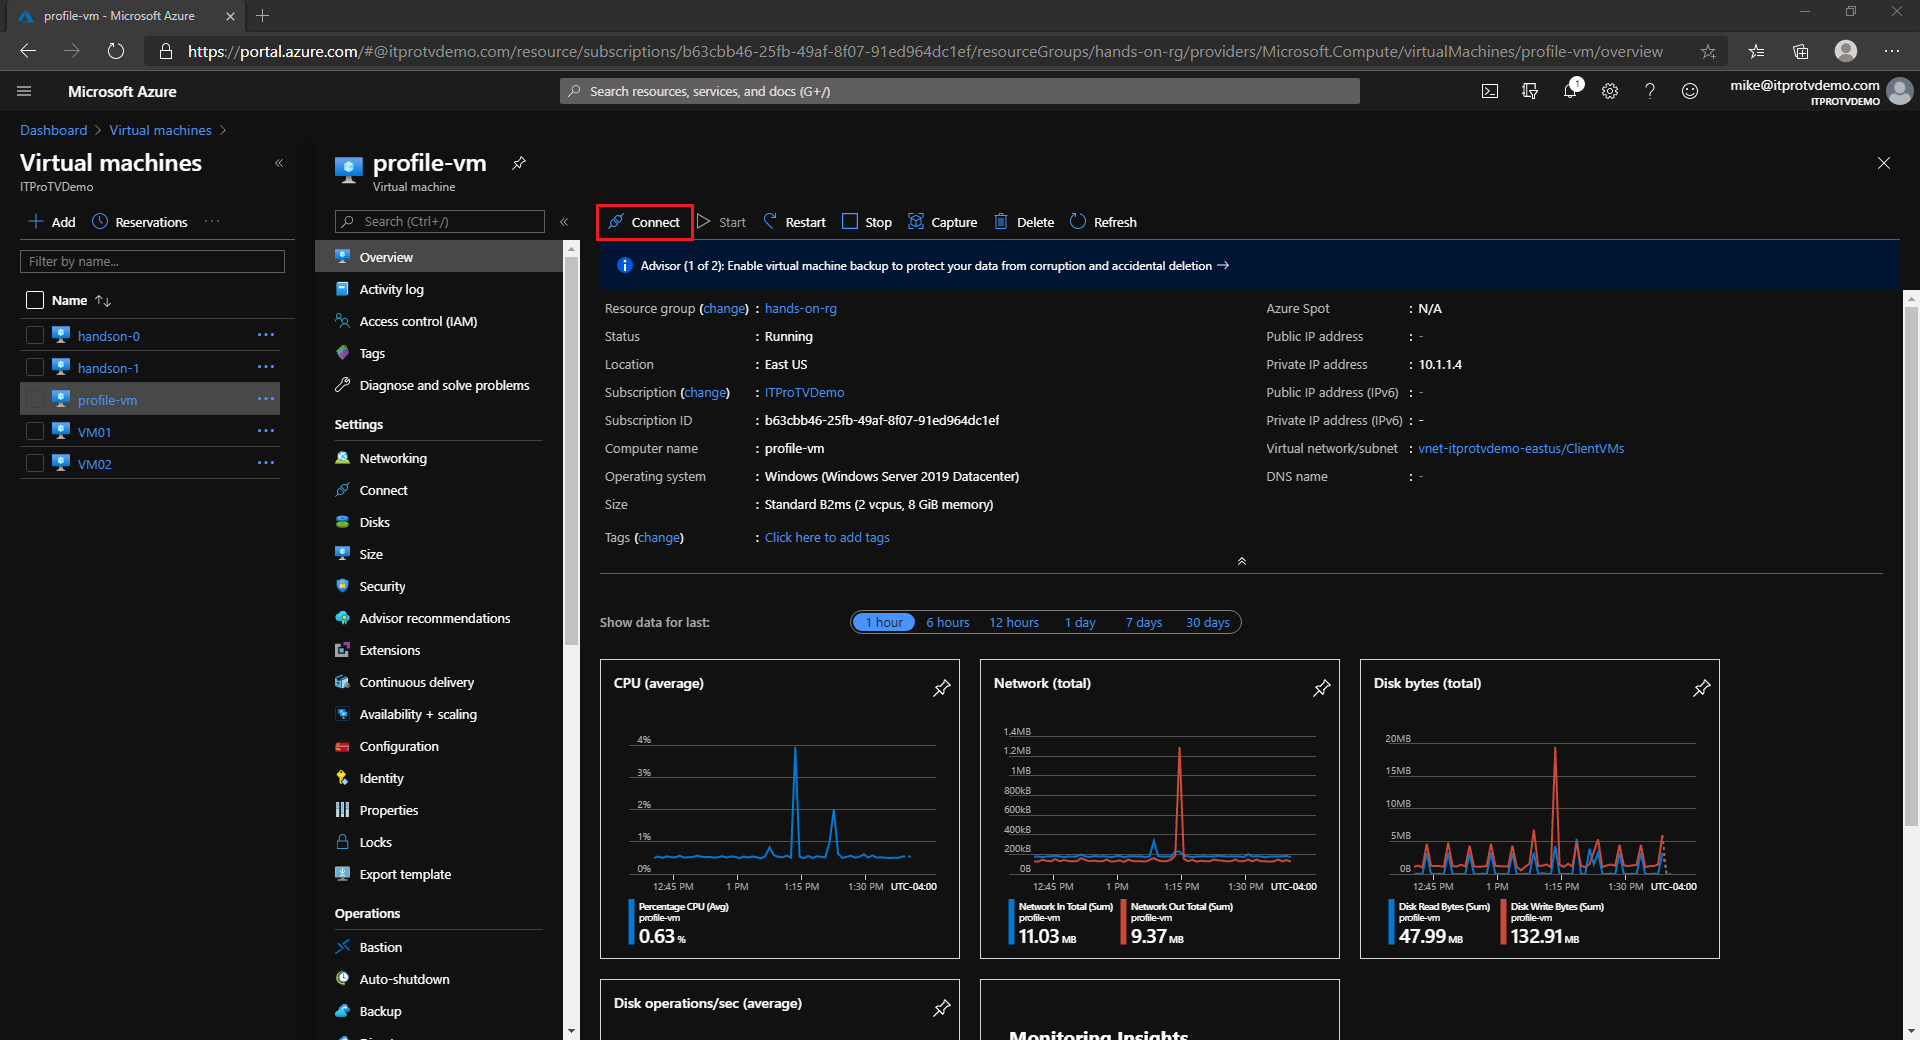 Connecting to an Azure VM from the Azure portal using the Azure Bastion